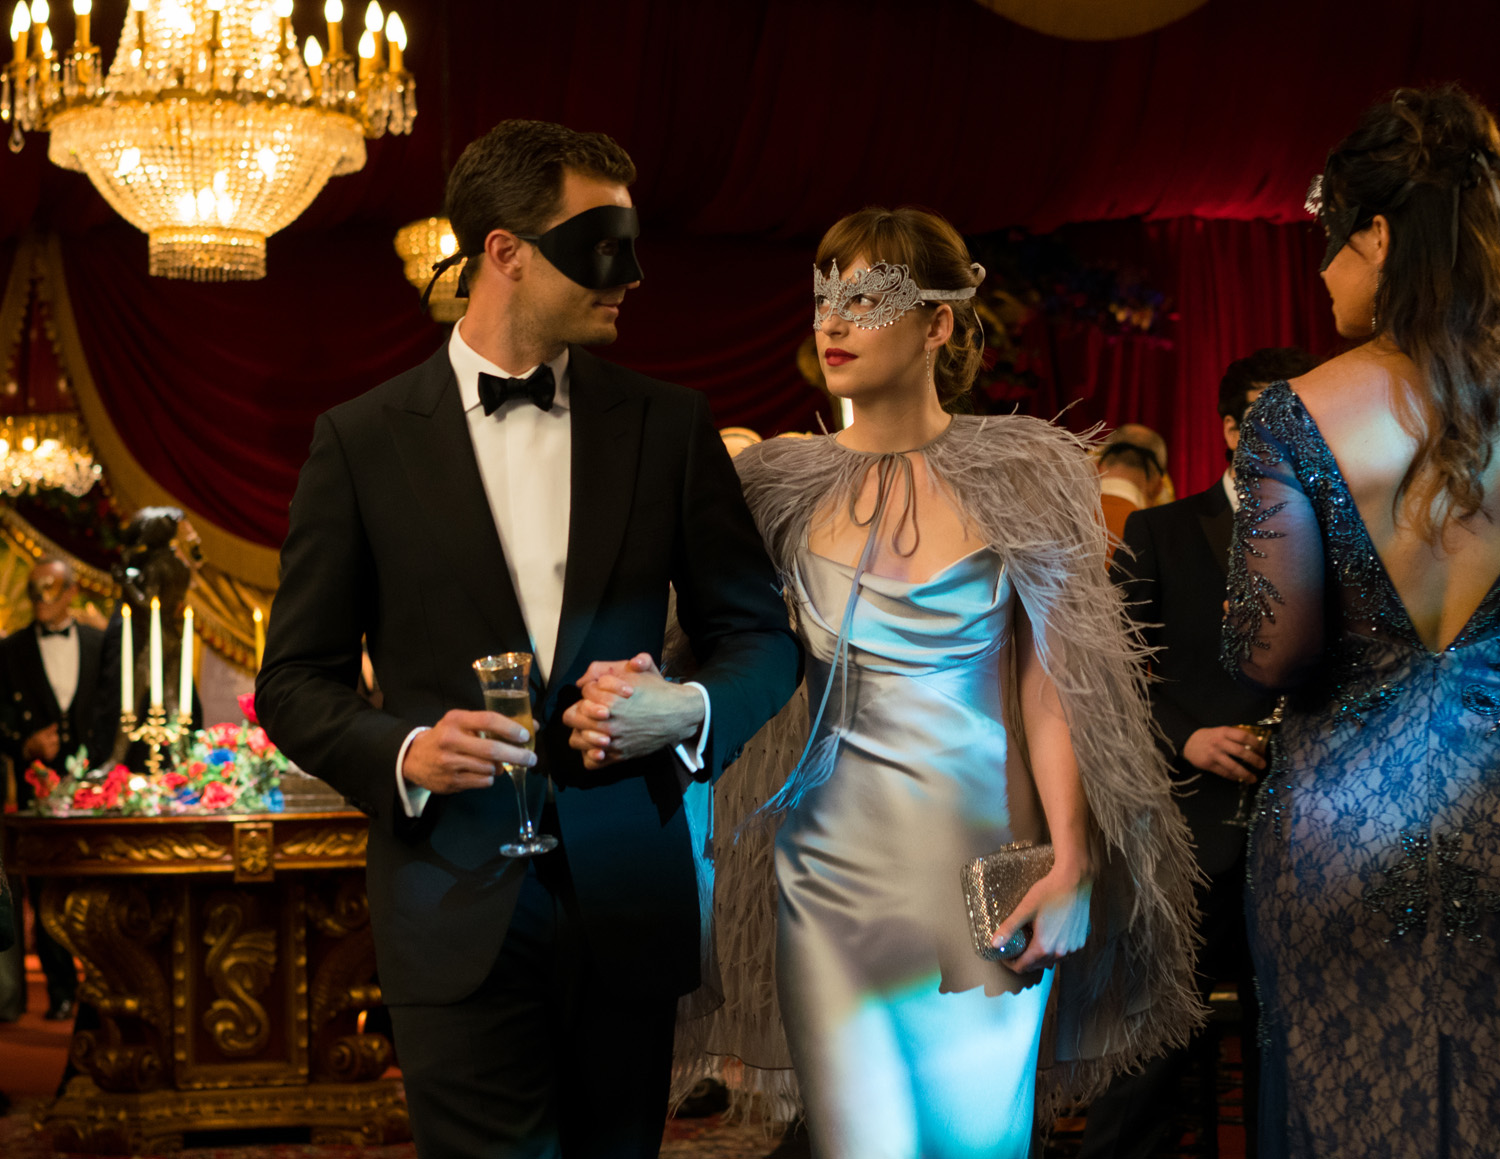 MONIQUE LHUILLIER. Dakota Johnson as Anastasia Steele wears a custom Monique Lhuillier gown in 'Fifty Shades Darker.' Photo courtesy of United International Pictures